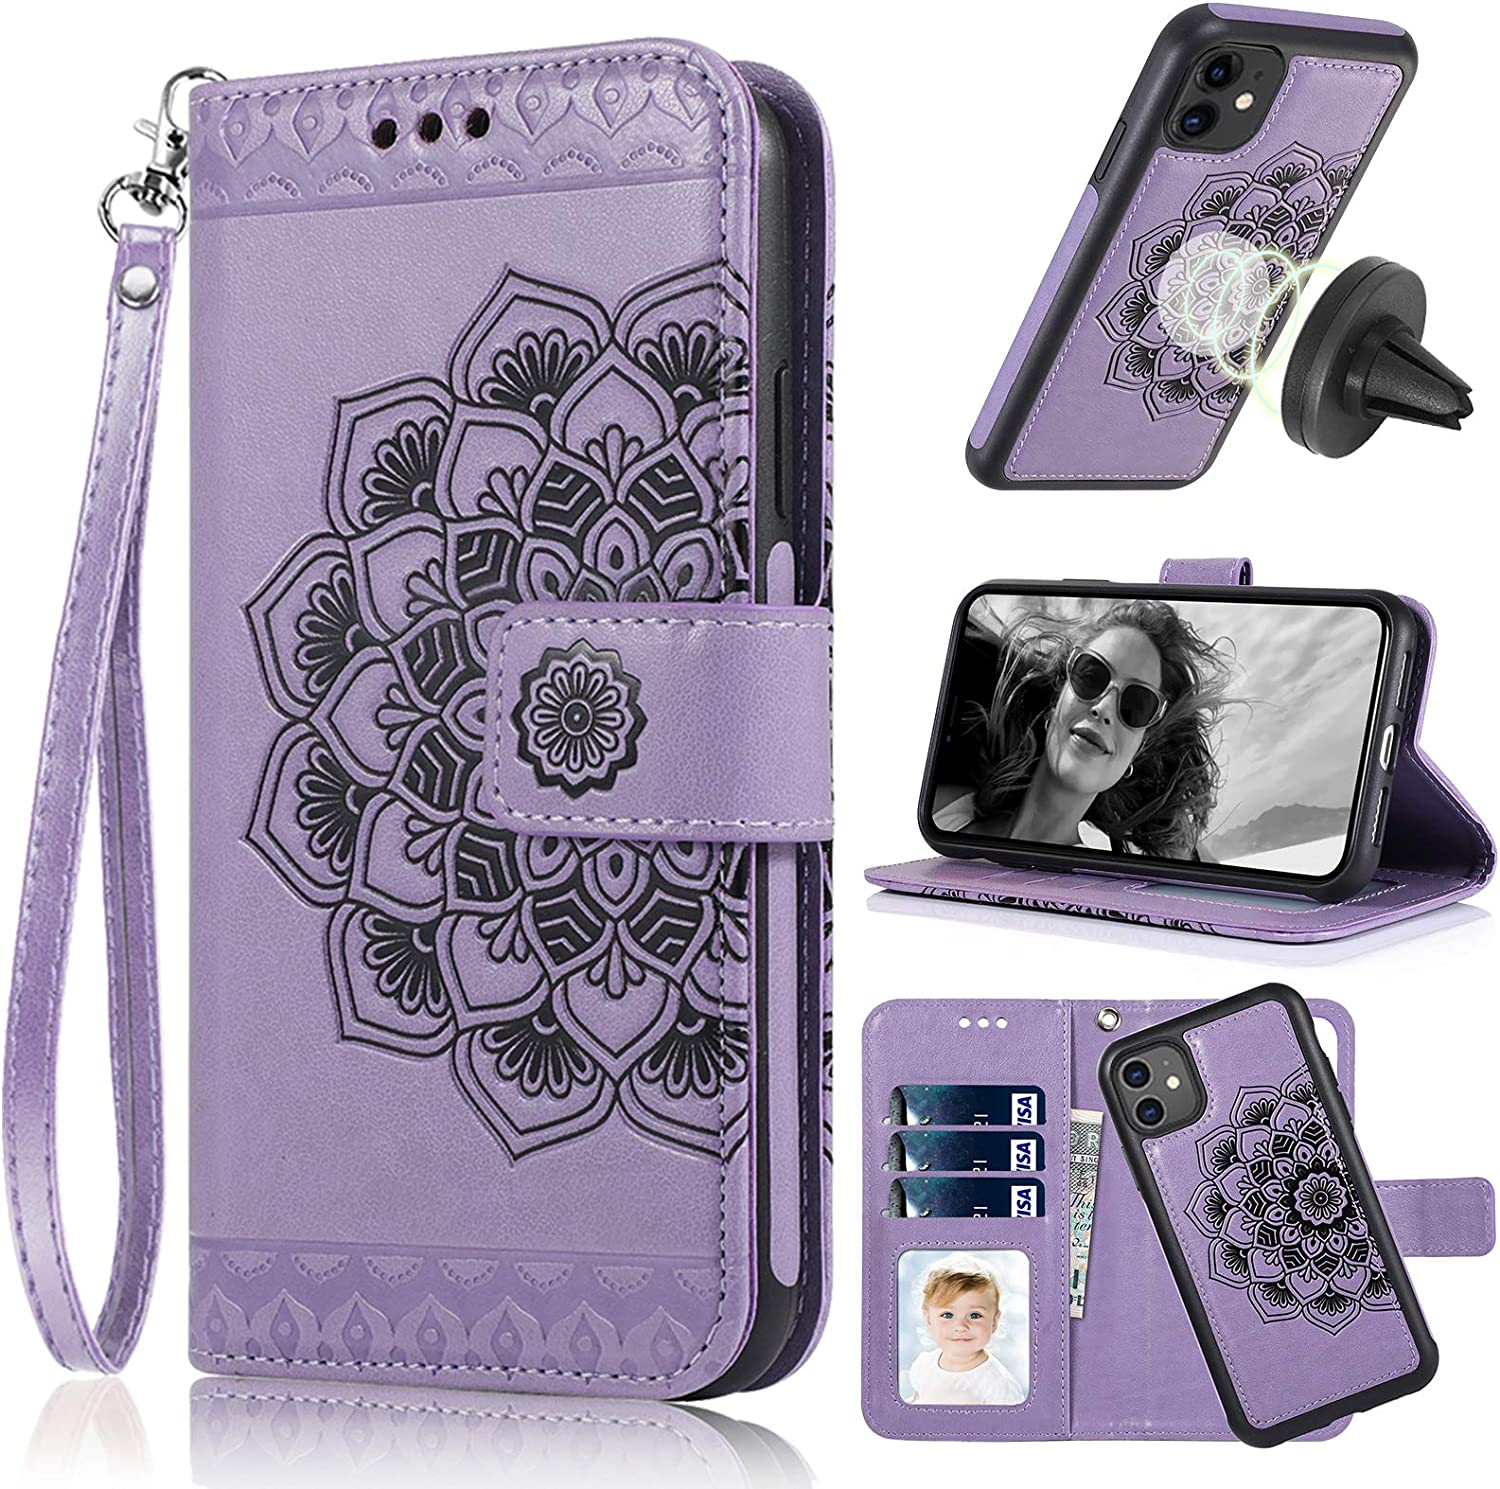 CASEOWL iPhone 11 Case, iPhone 11 Wallet Case 2 in 1 Detachable Slim Fit Car Mount,with Card Holder,Kick Stand,RFID Protection,Strap,Mandala Embossed Leather Wallet Case for iPhone 11-6.1 inch,Purple